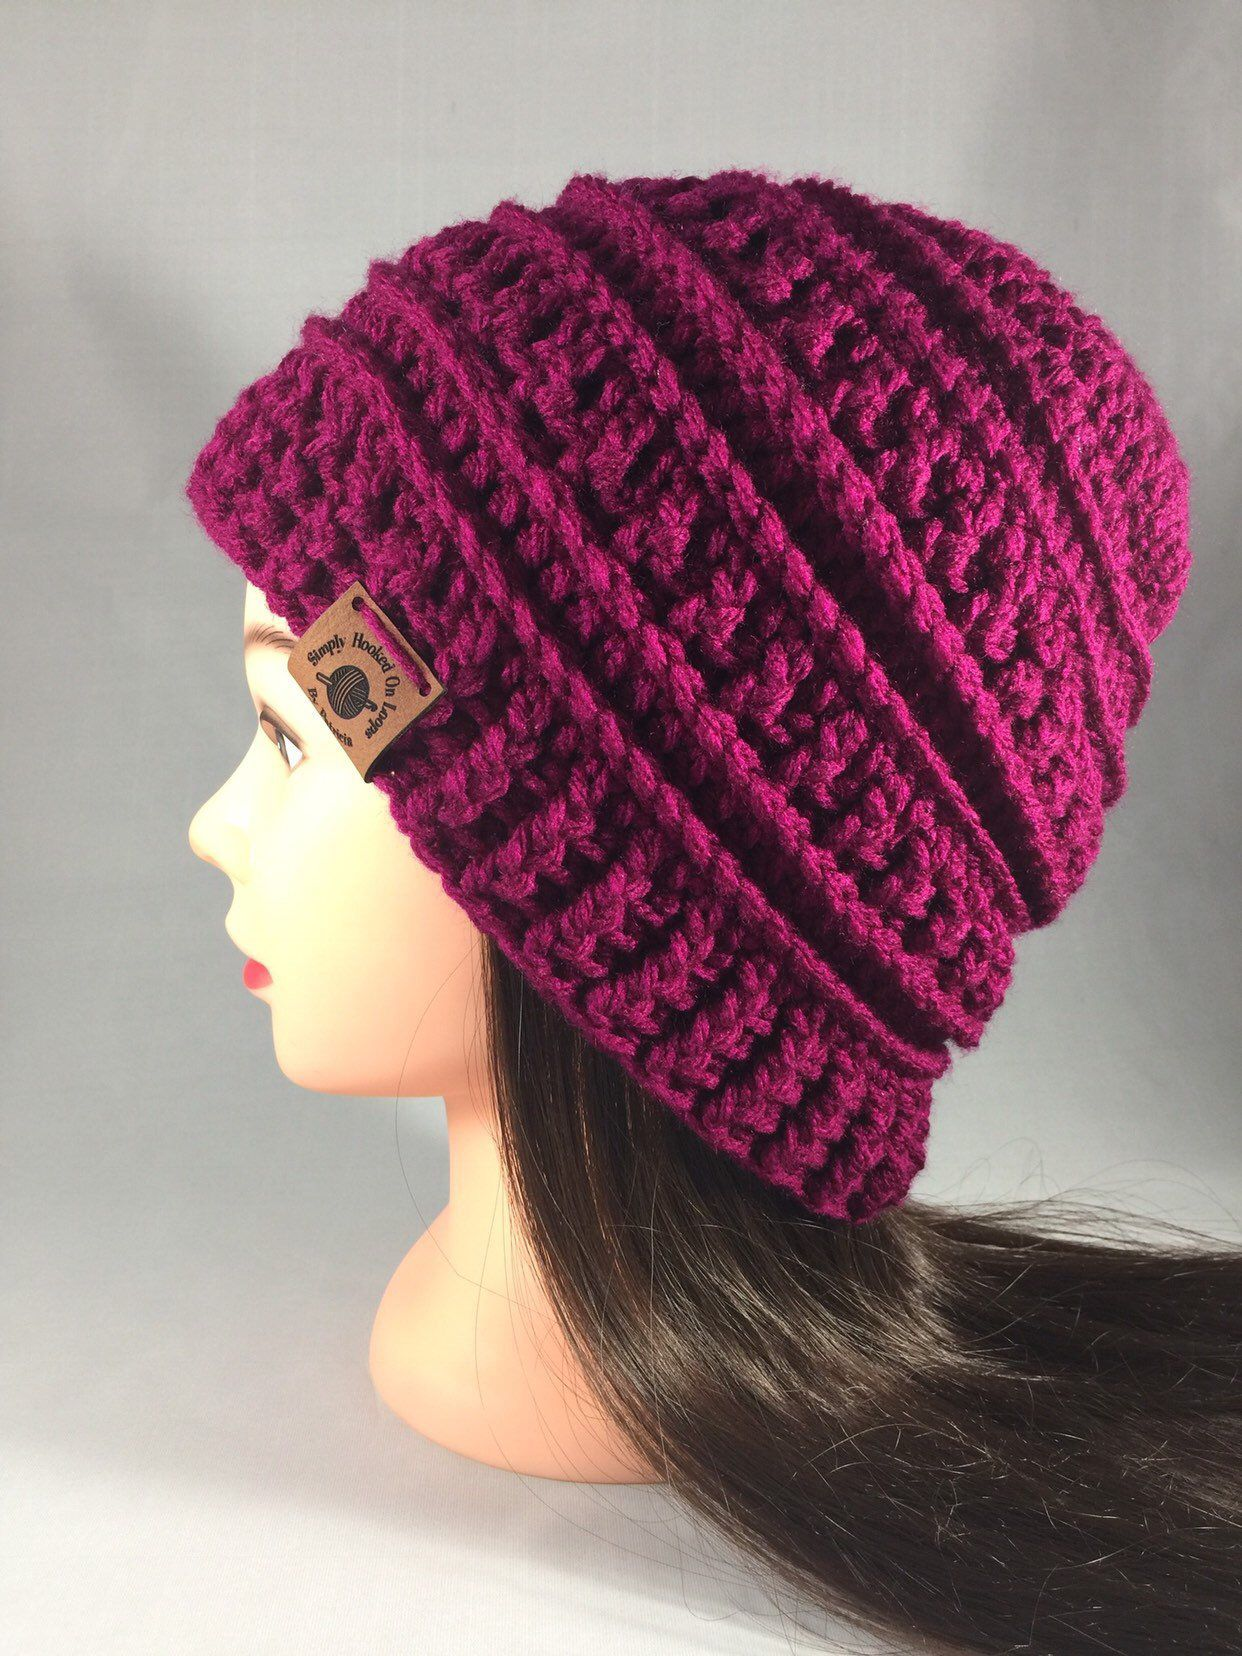 Excited to share this item from my  etsy shop  Raspberry Women s Textured  Hat Beanie Cap Handmade  accessories  hat  beanie  cap  textured  large   pink ... 28e06779dcc